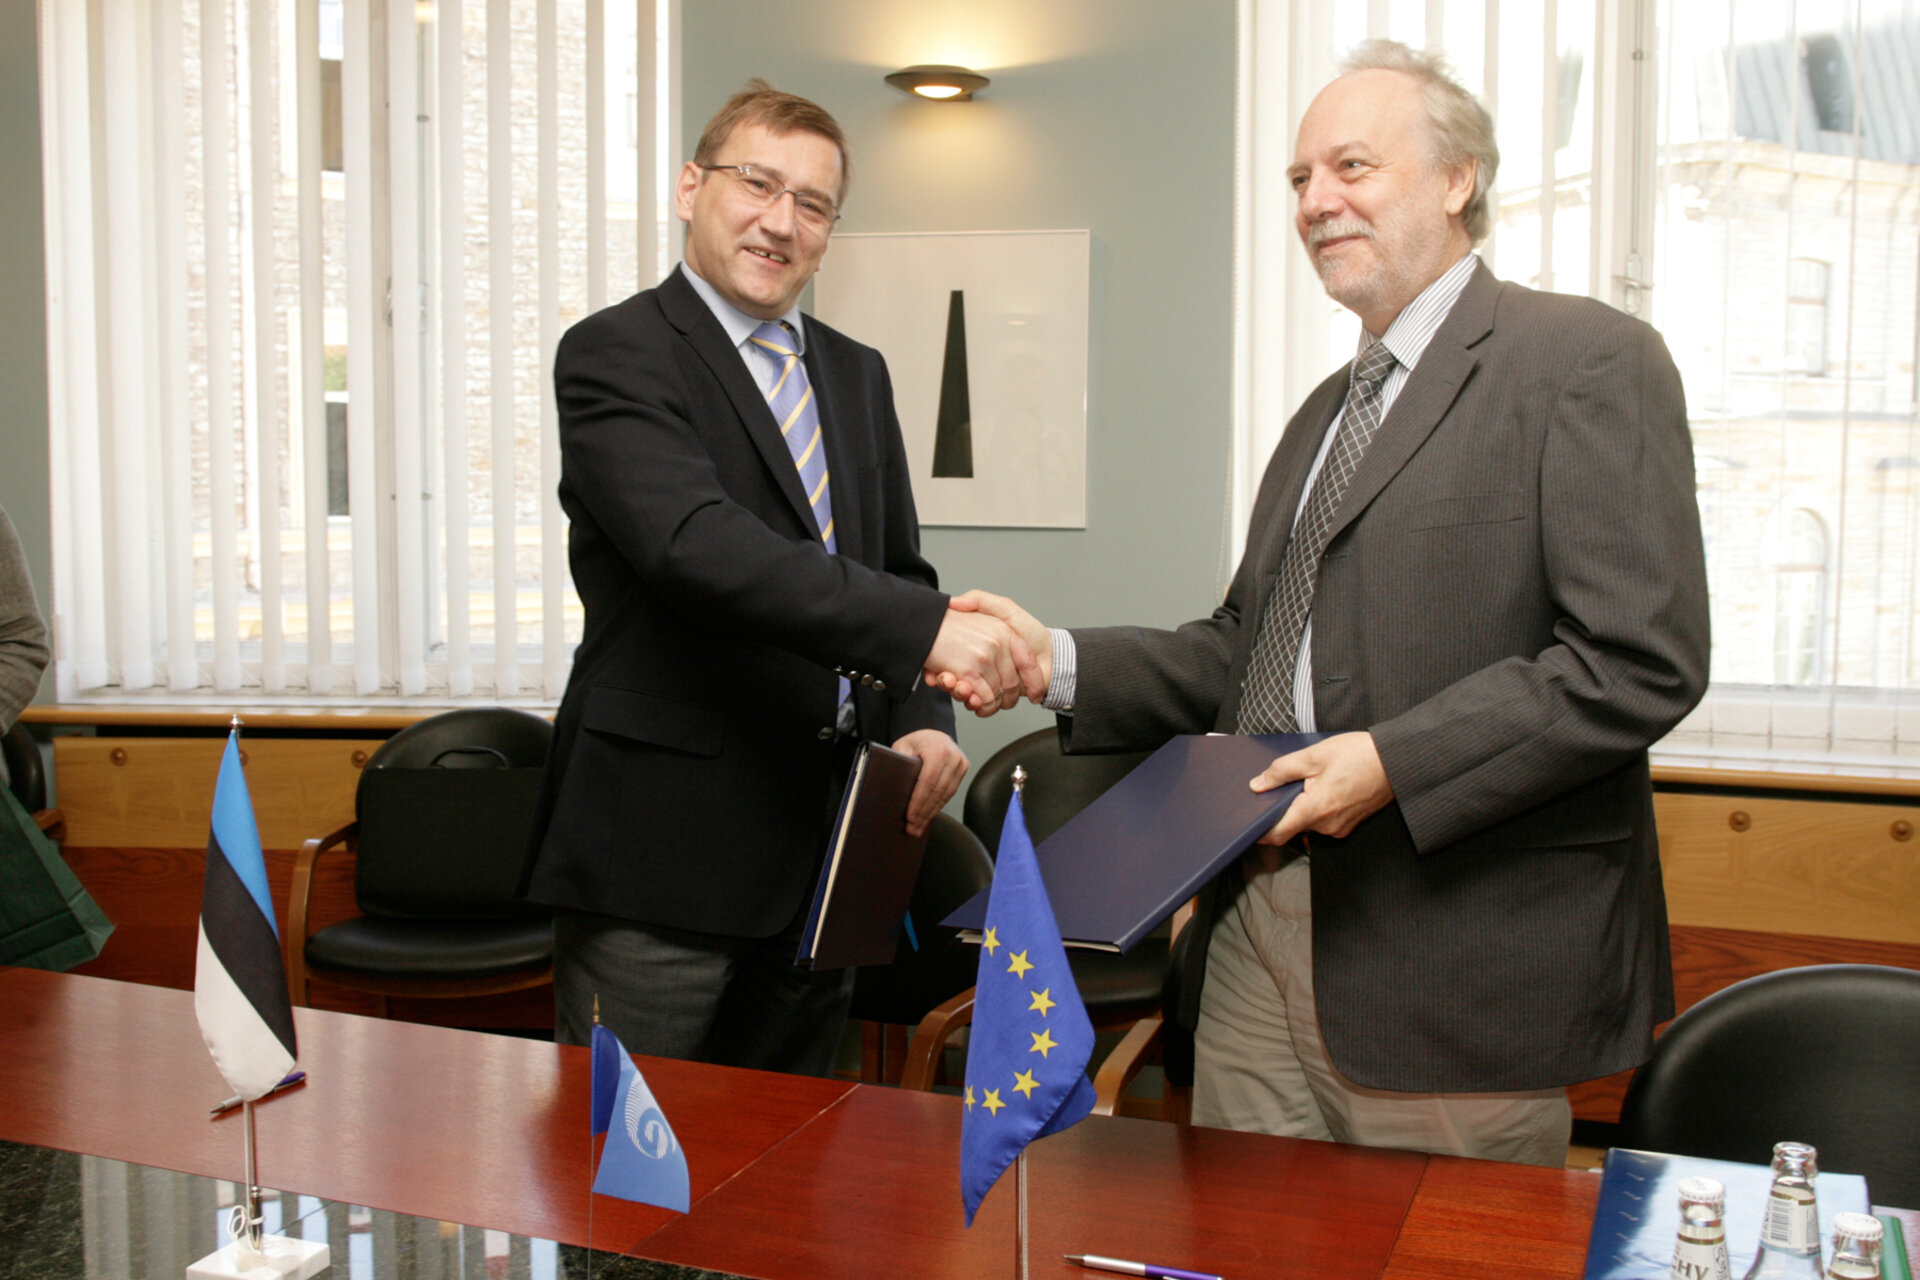 Mr Parts (left) and Mr Oosterlinck (right) signed the Cooperation Agreement on 20 June